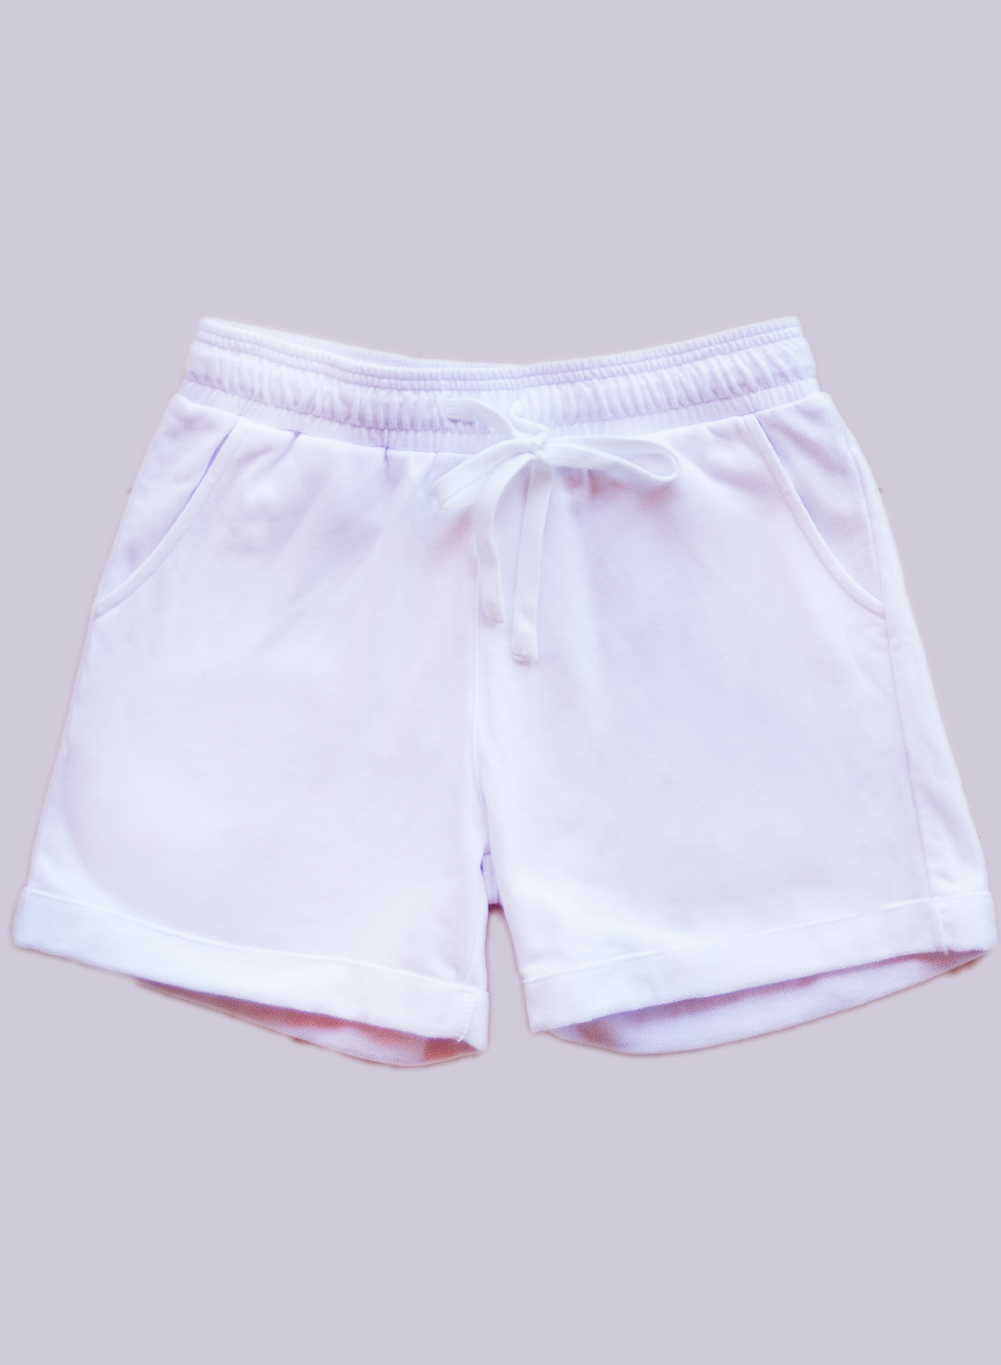 Custom Sweatshort